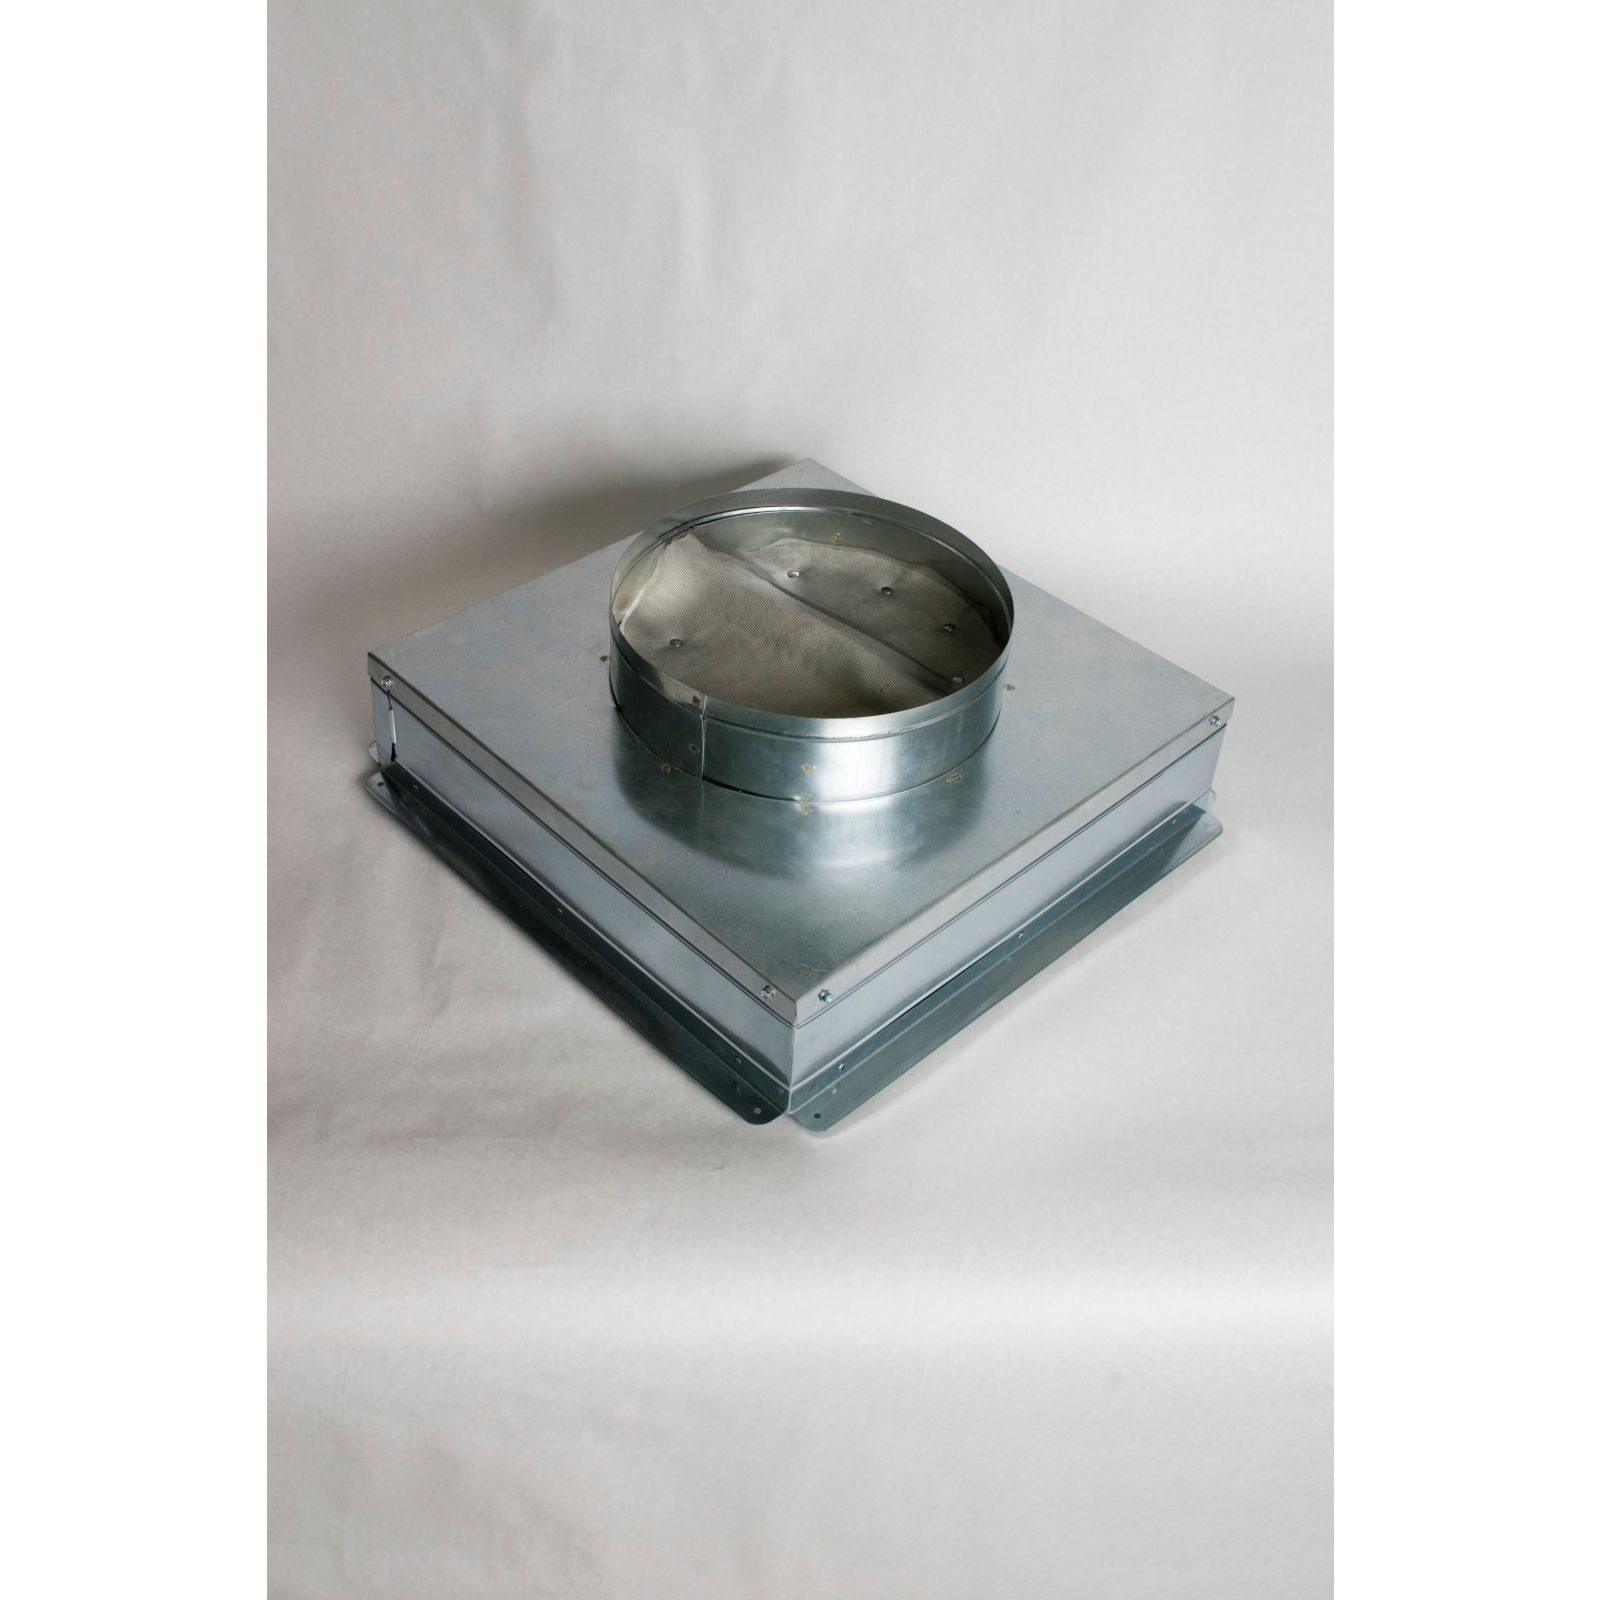 "R-6 Ceiling Radiation Damper Top, Model CRD, 10"" X 10"" X 8"""